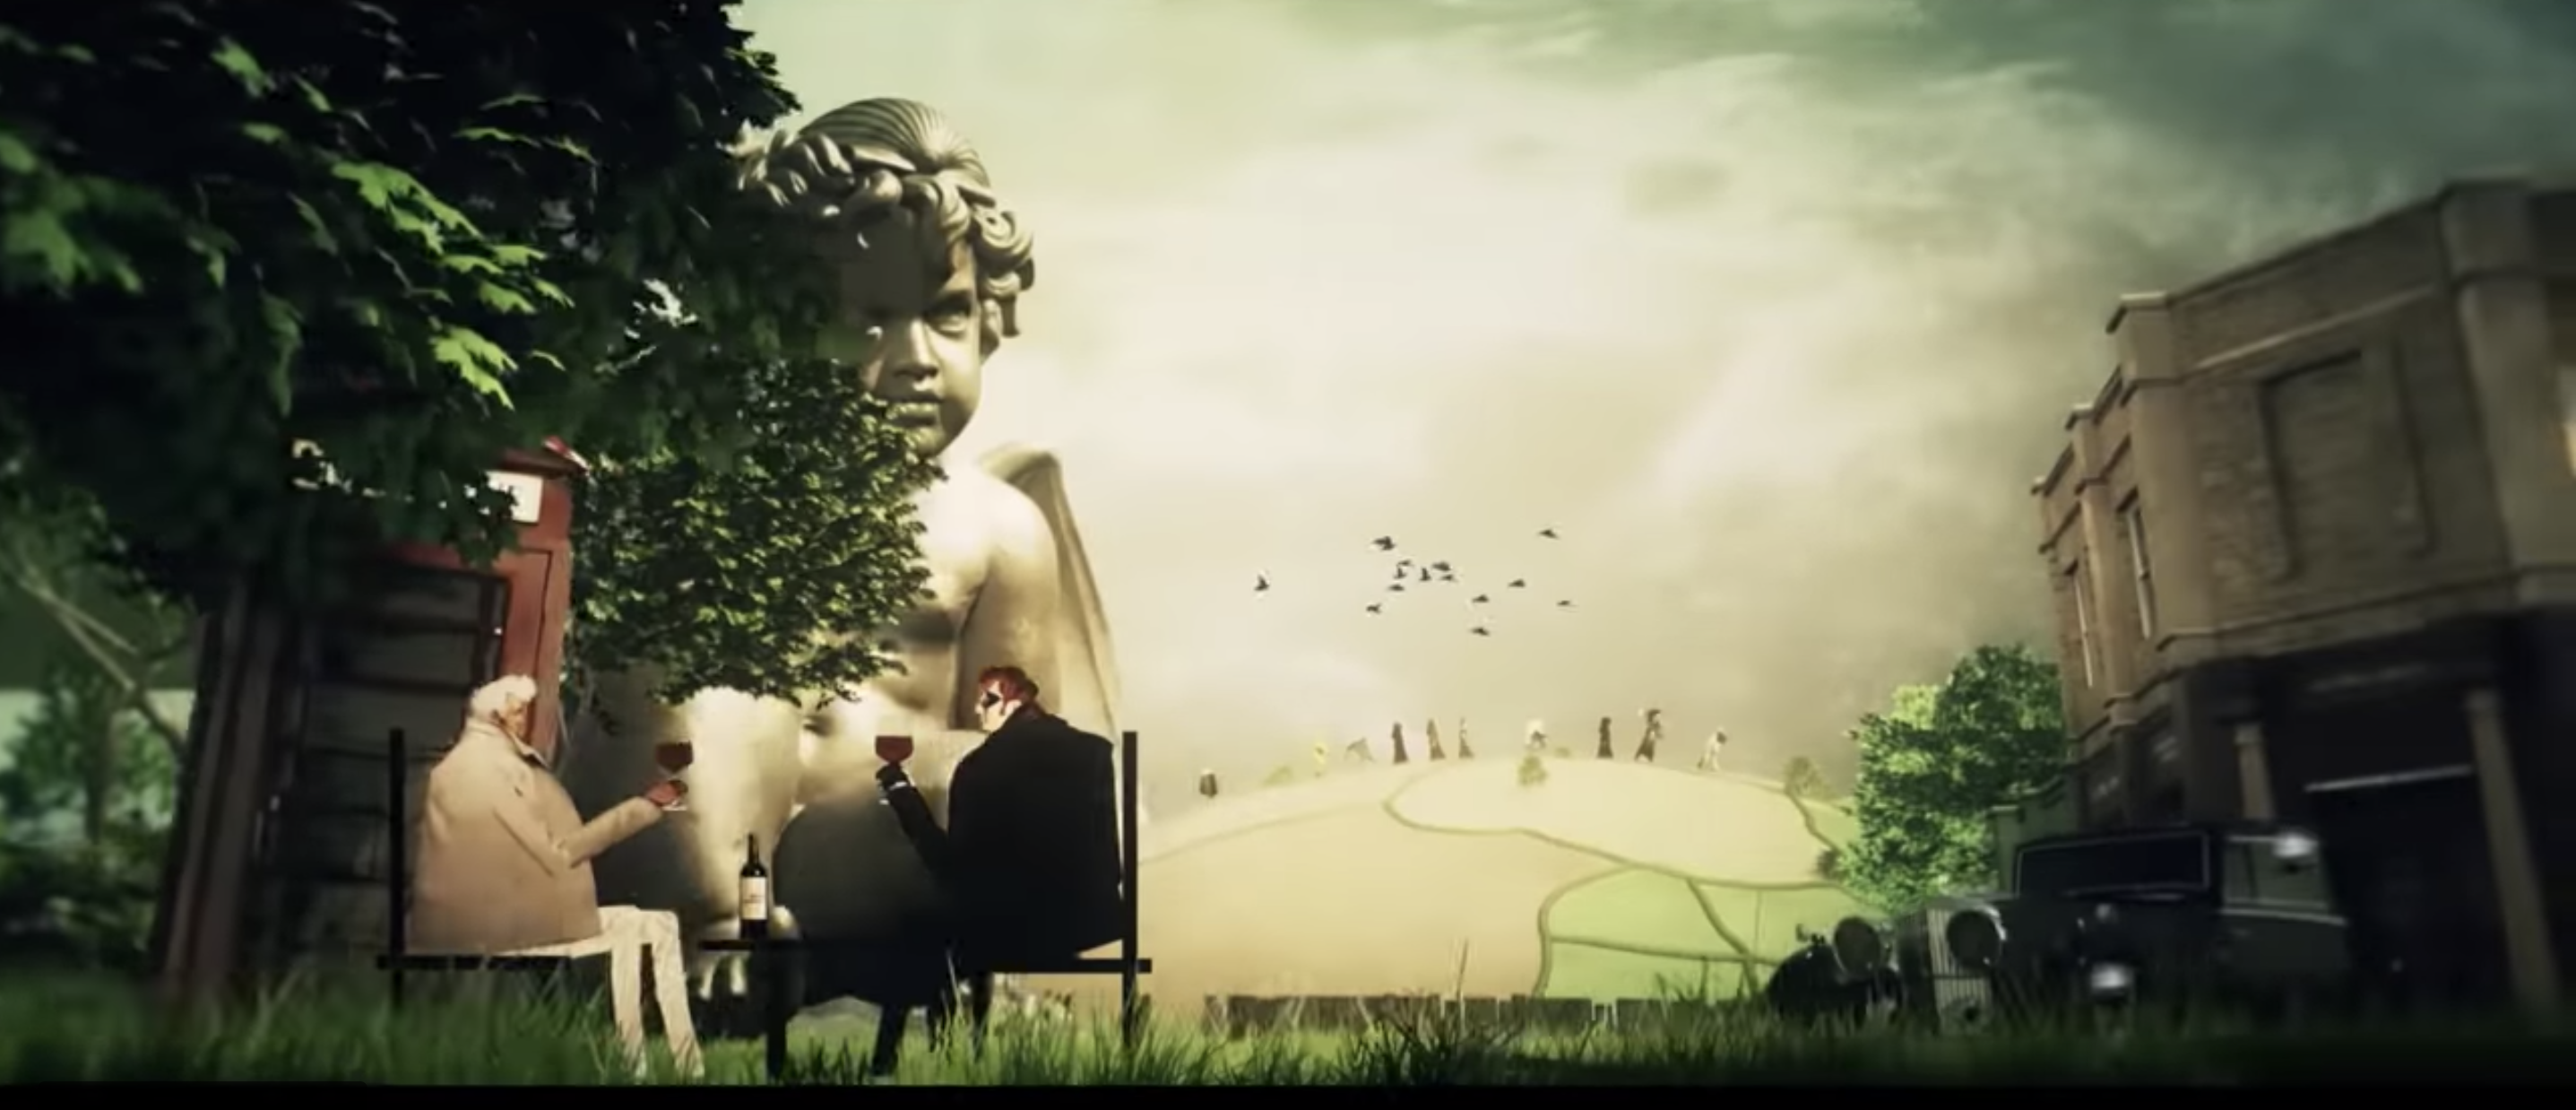 The opening scene from the series.